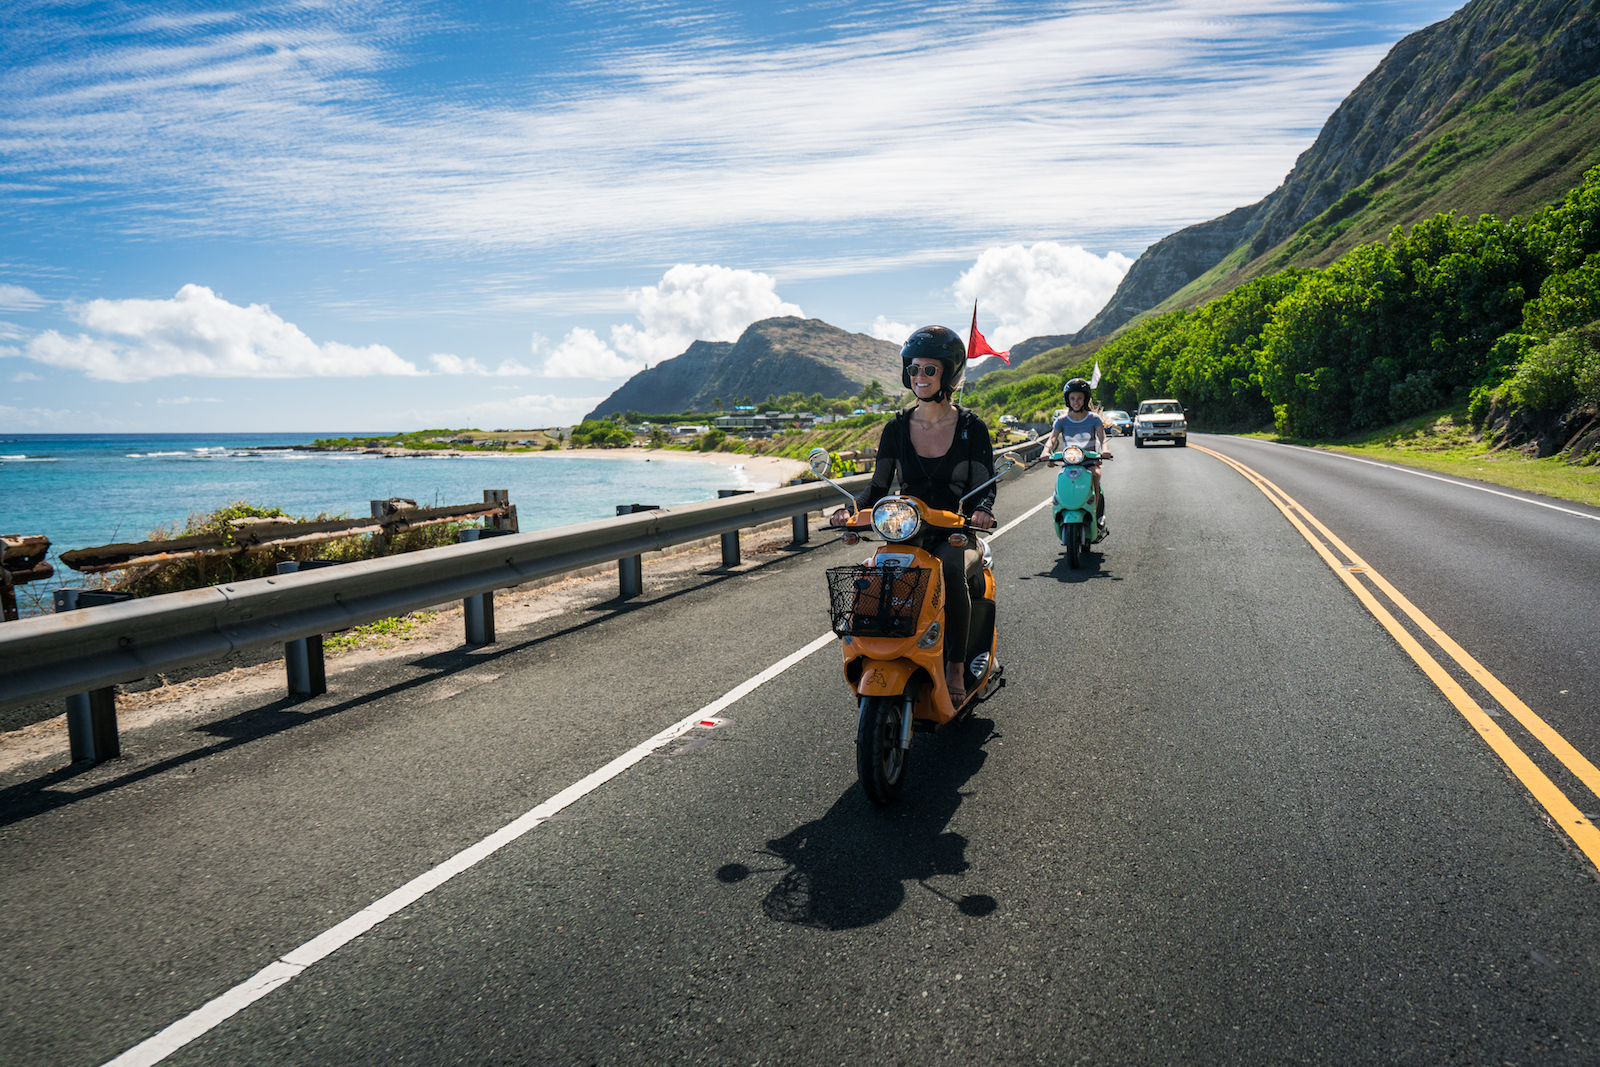 Hawaii Moped Rentals & Genuine Scooter Sales